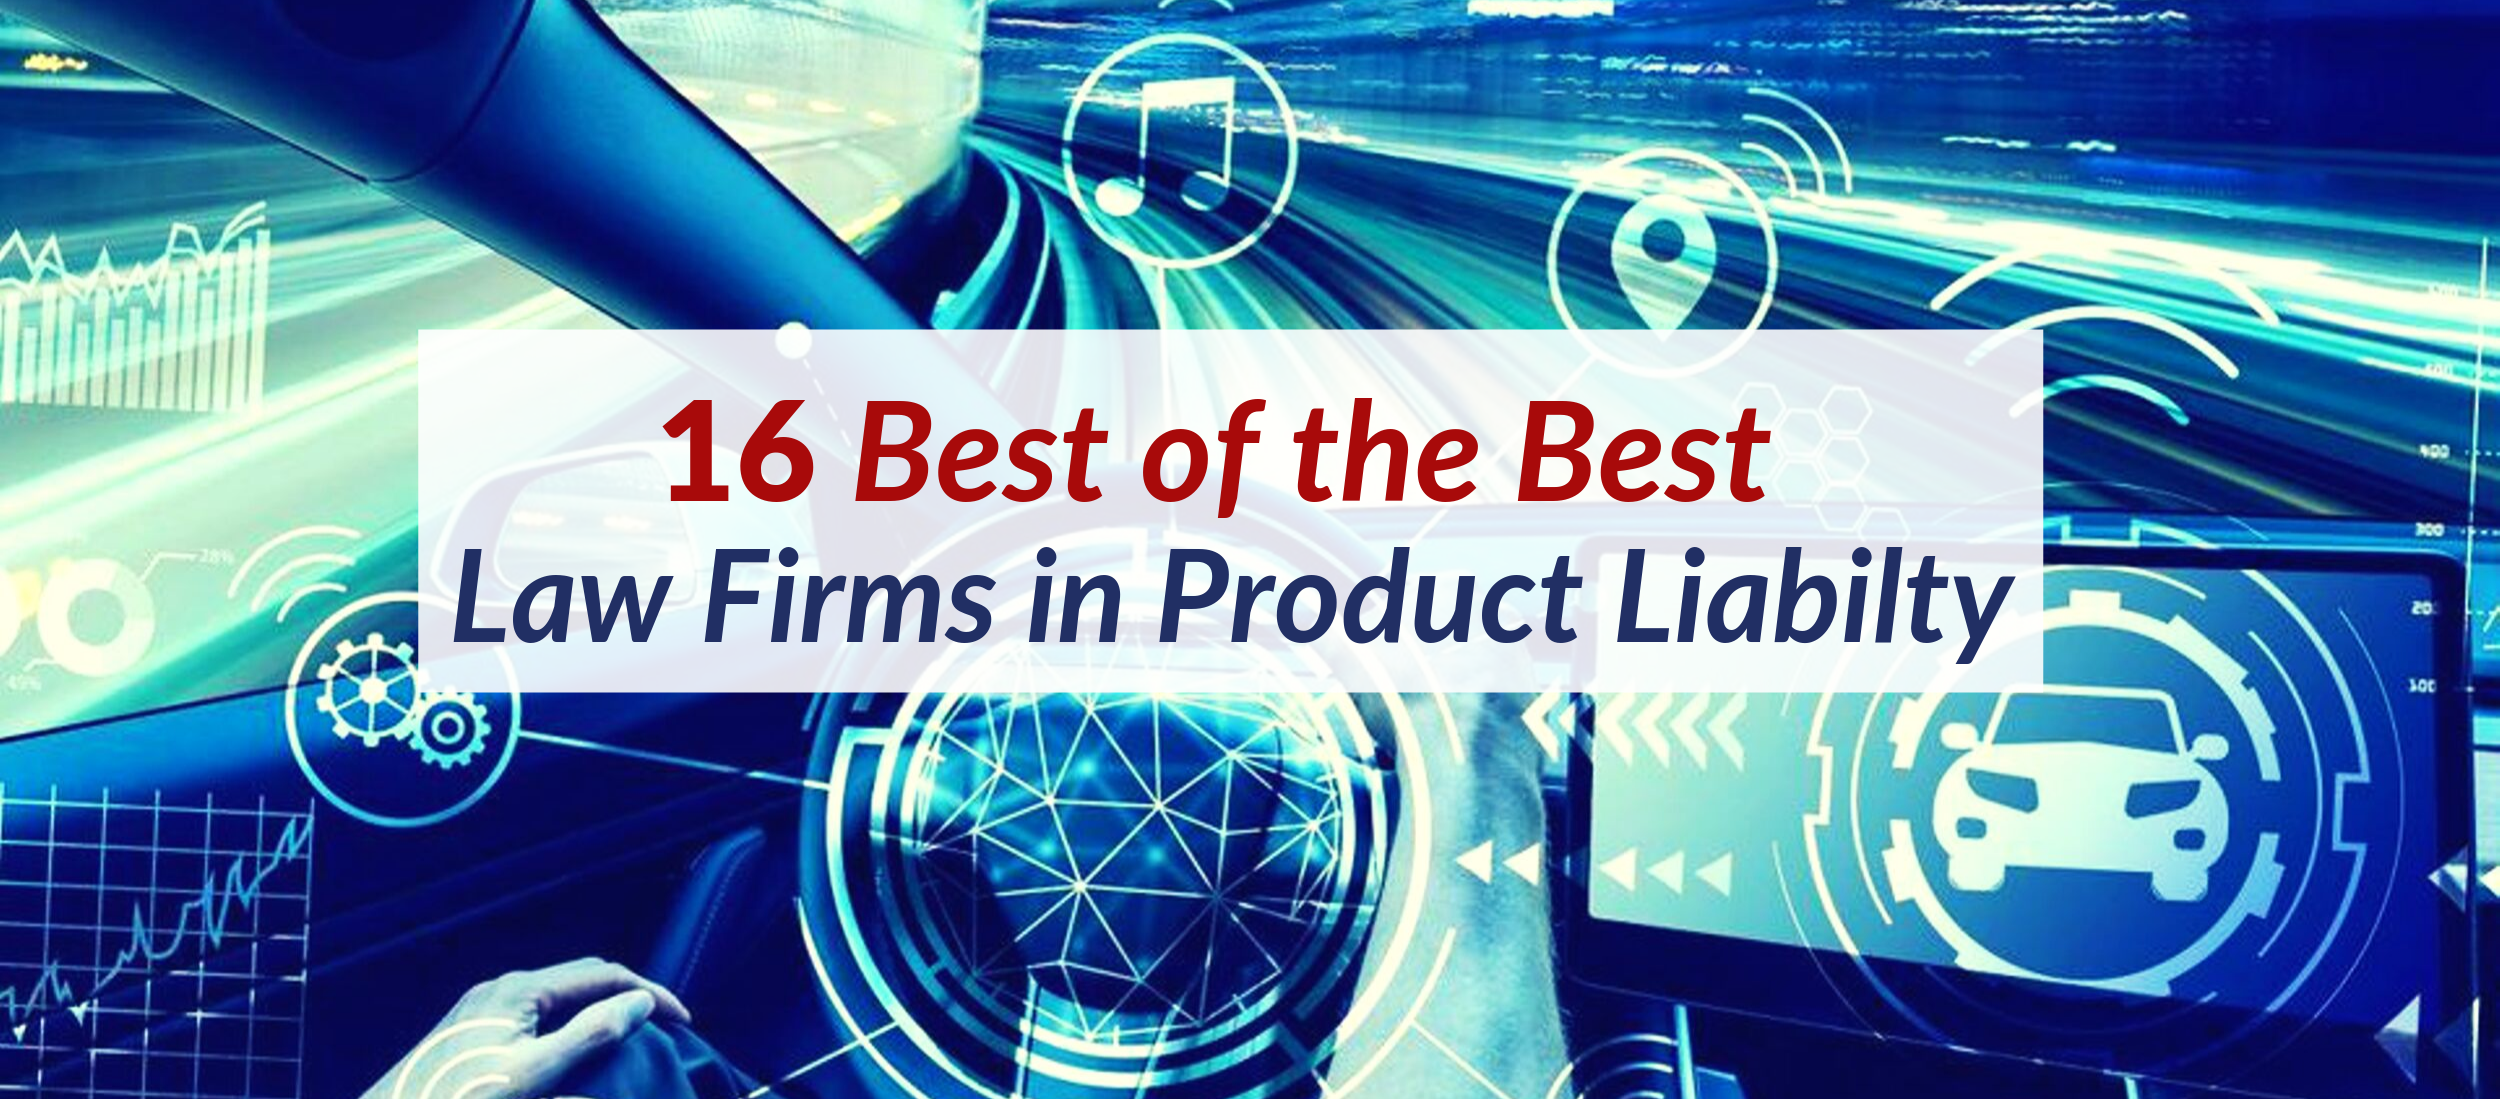 9_ 20 16 Best of the Best Law Firms in Product Liabilty_header.png